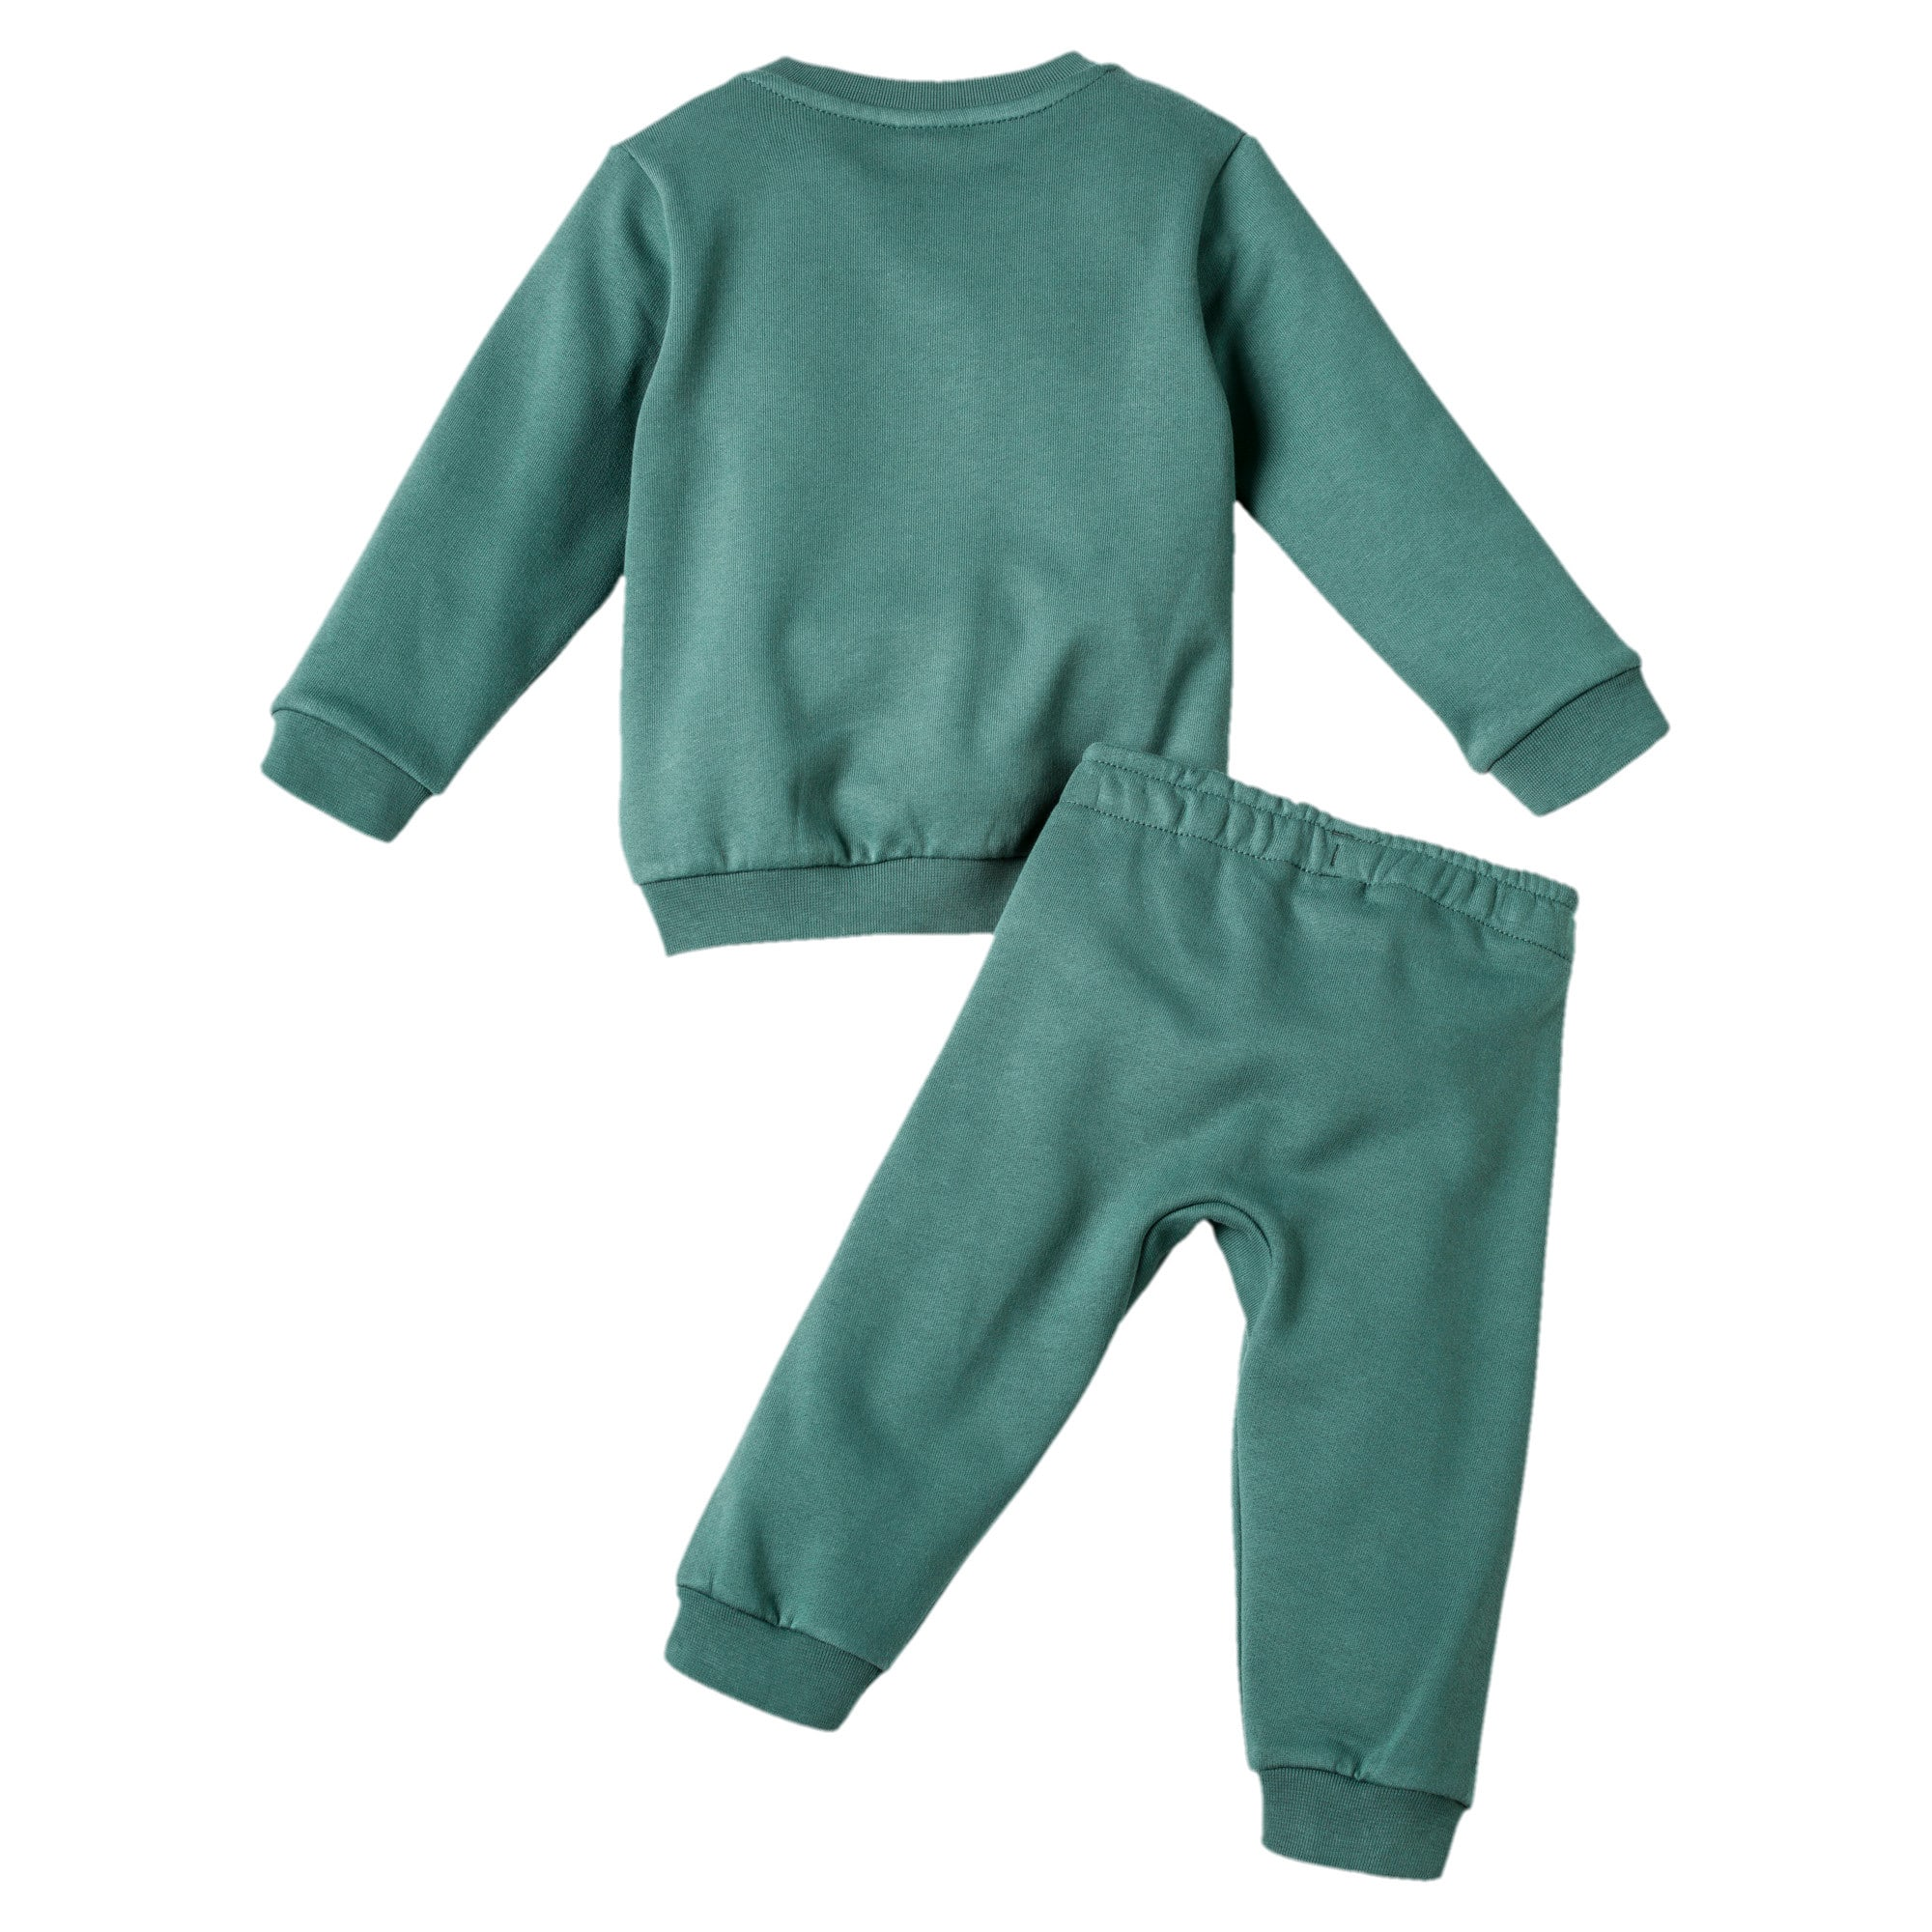 Thumbnail 2 of Street Wear Babies' Jogger Set, Bistro Green, medium